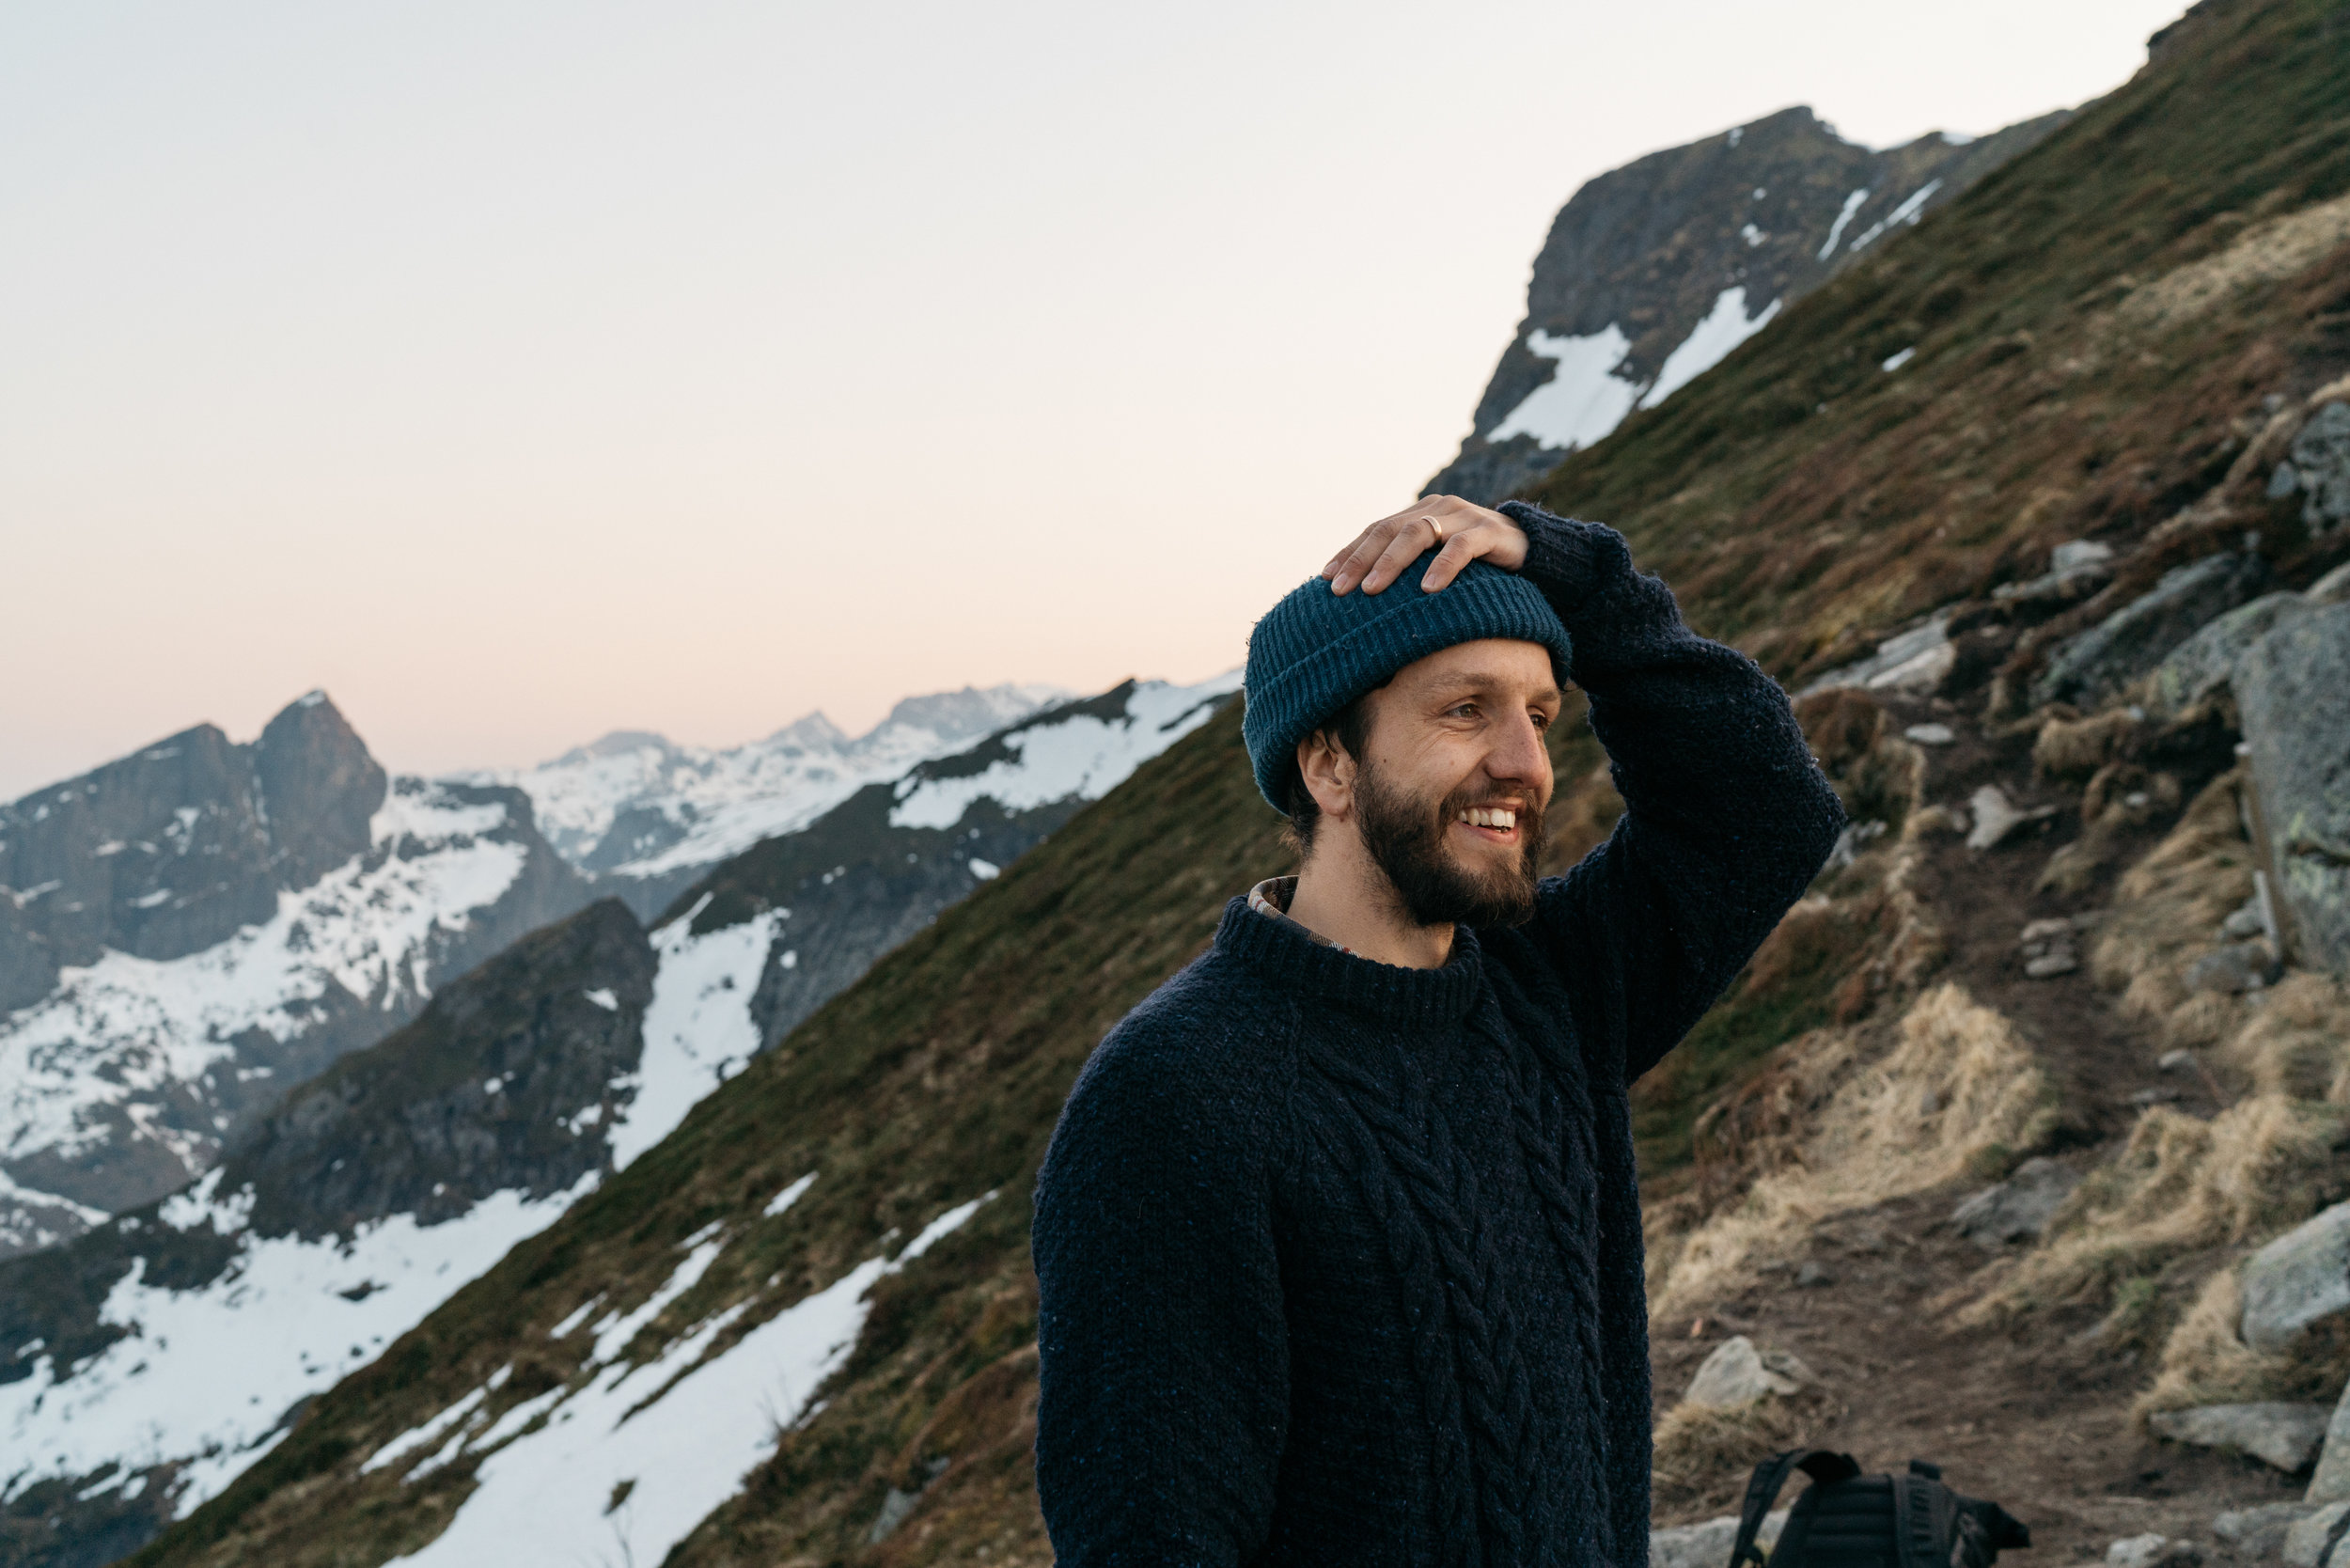 Craigs  face when he saw the view form Reinebringen